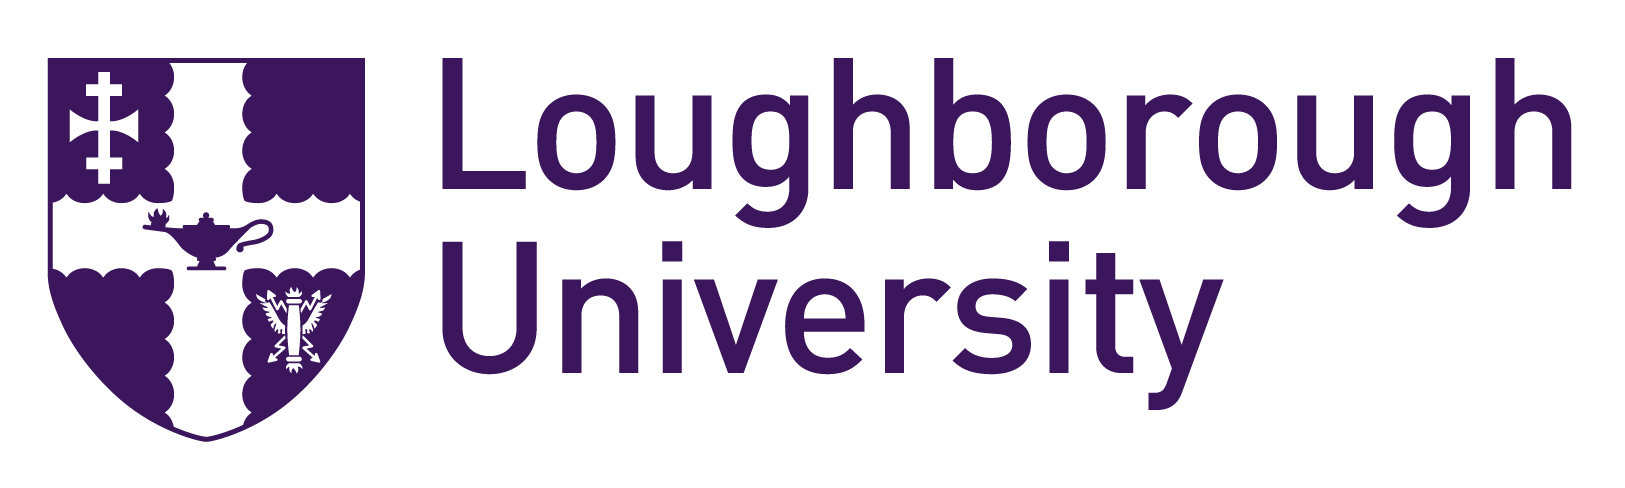 Loughborough University